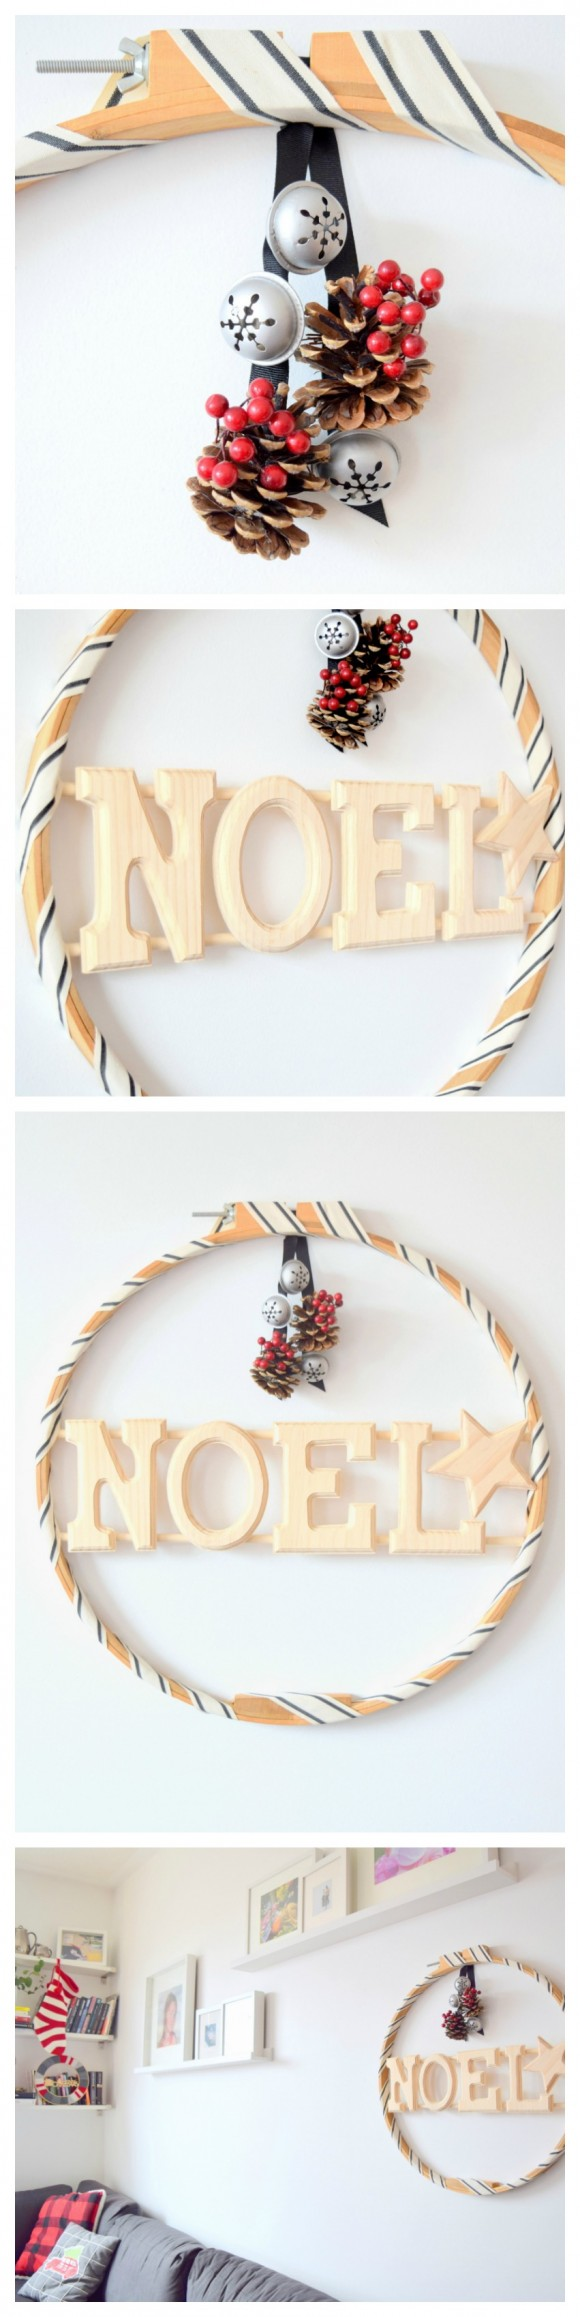 diy-giant-christmas-wreath-northstory